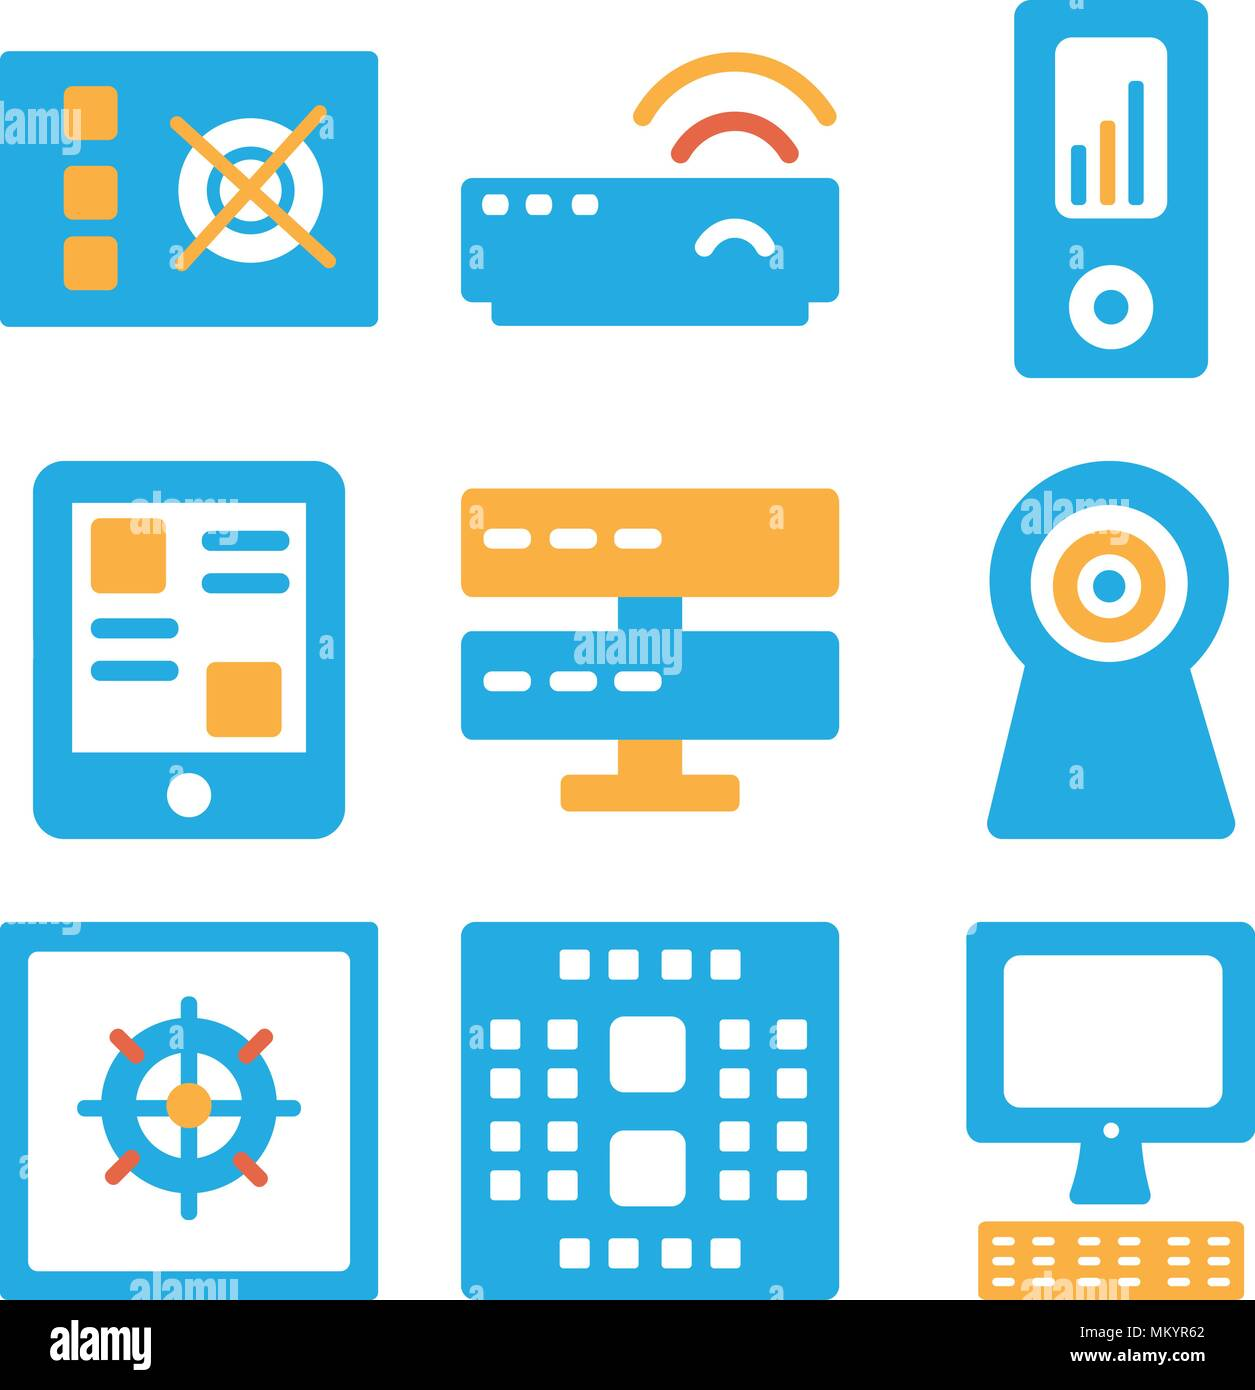 Set Of 9 simple editable icons such as Computer, Cpu, Cooler, Webcam, Server, Smartphone, Ipod, Modem, Power, can be used for mobile, web Stock Vector